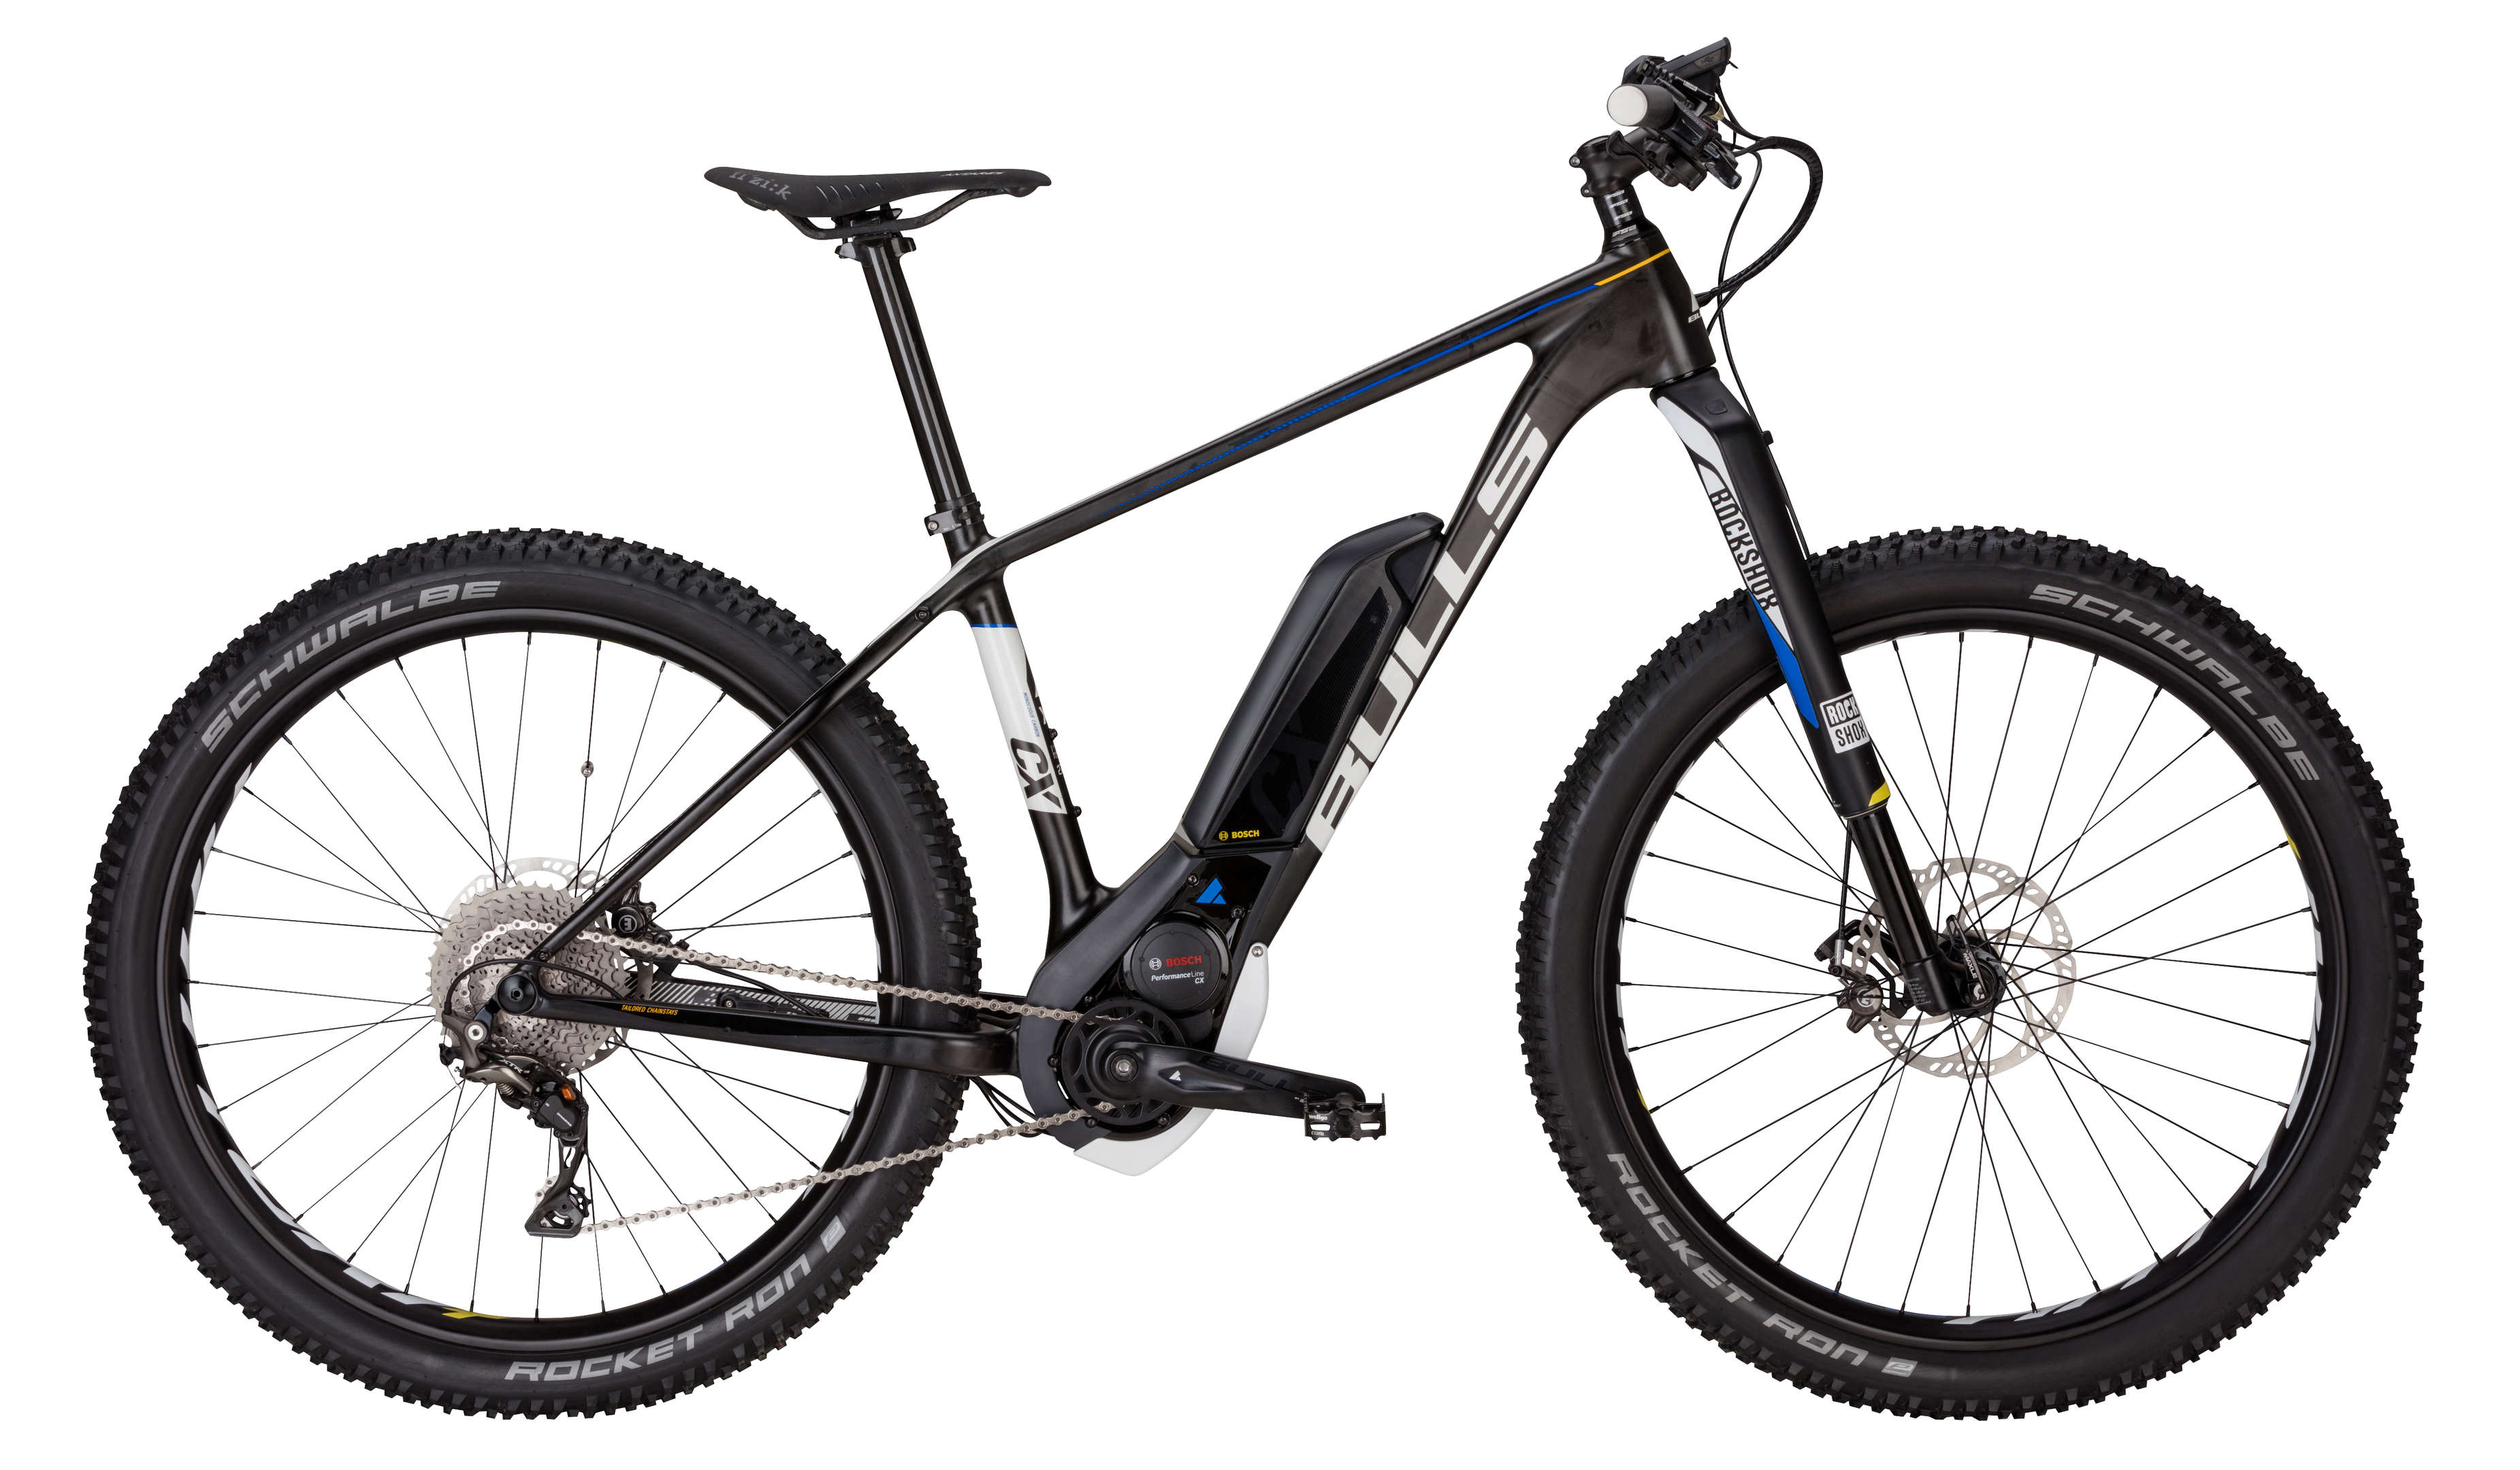 BULLS E-Bike Black Adder Team E SL